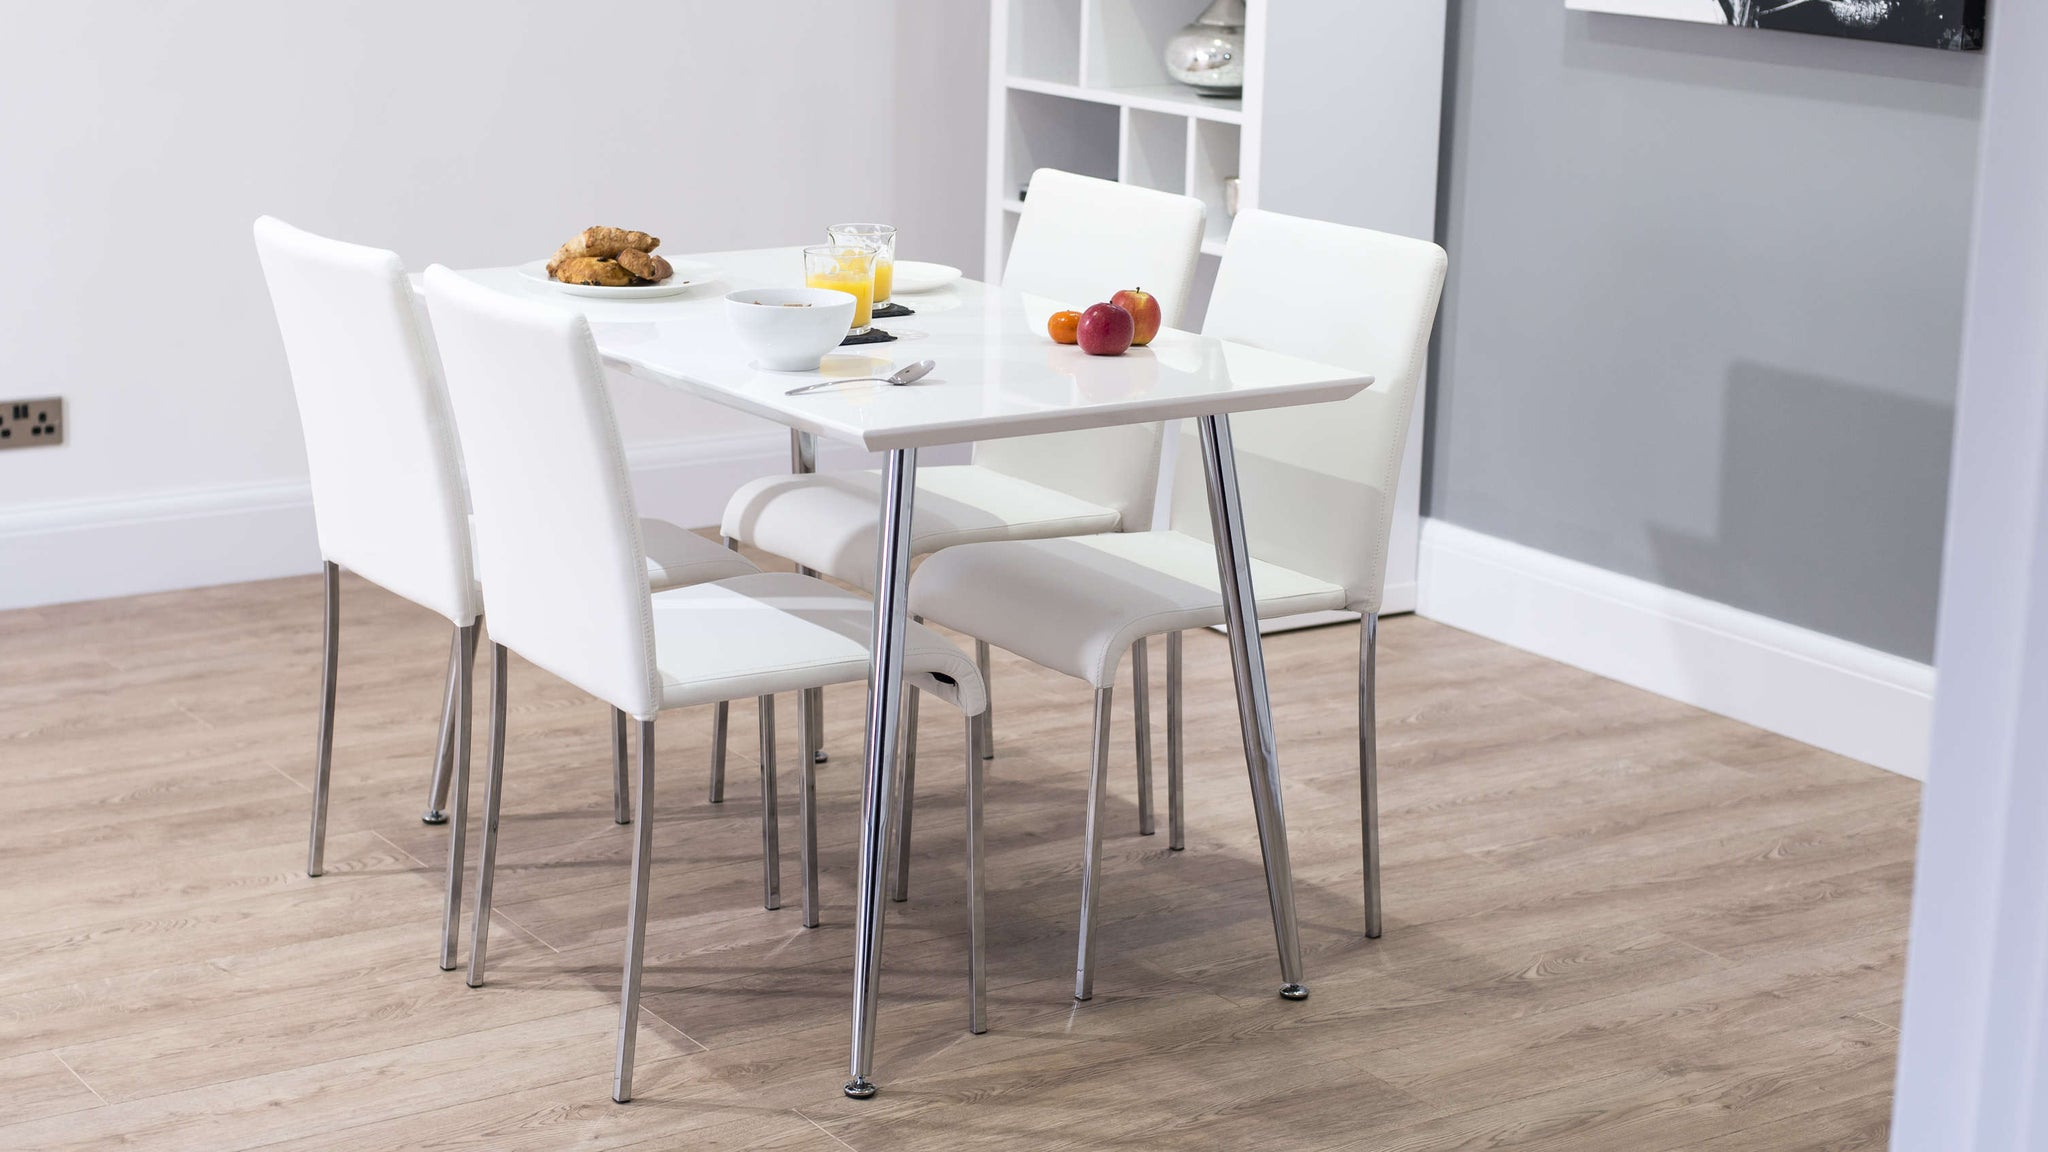 4-6 Seater White Dining Set UK Delivery